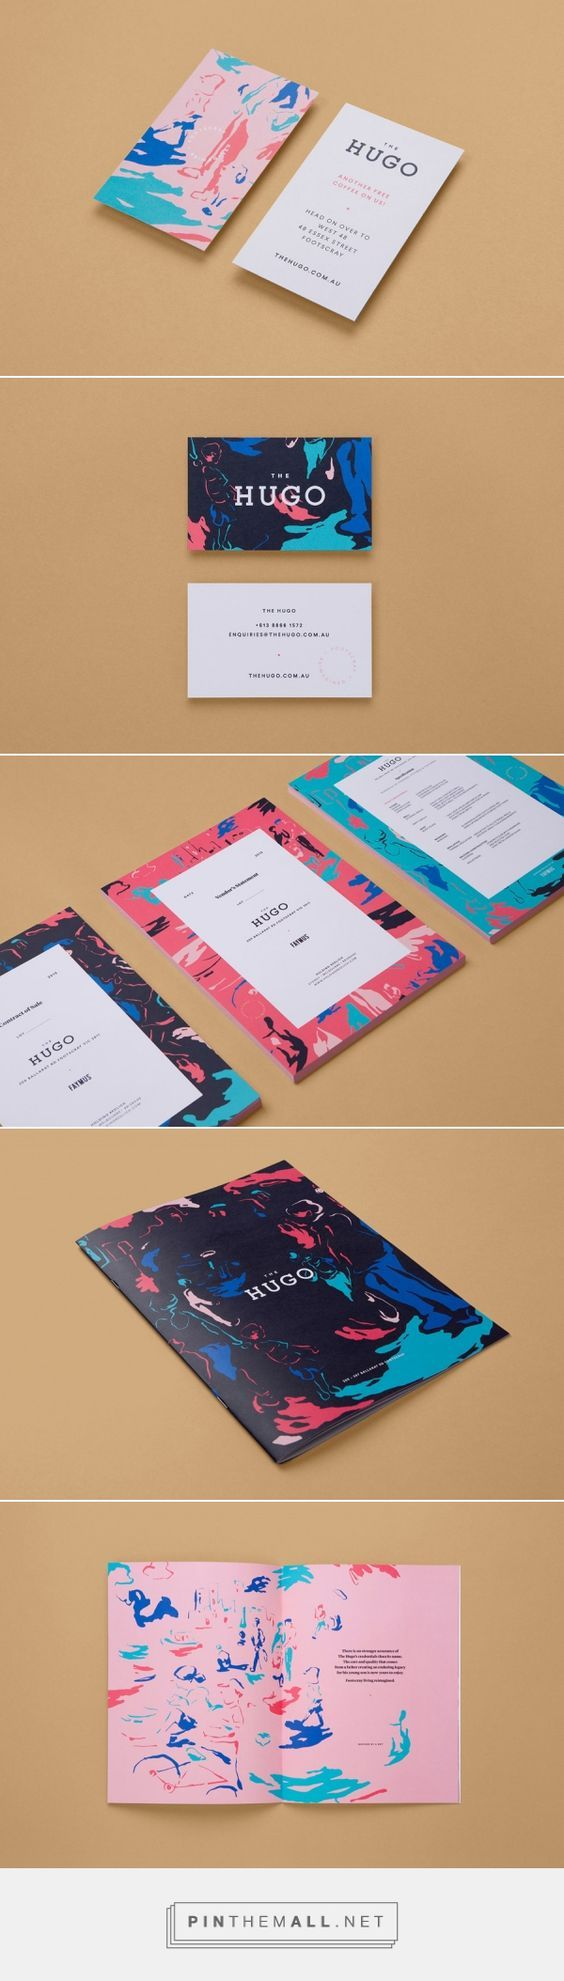 The Hugo Branding by StudioBrave | Fivestar Branding – Design and Branding Agency & Inspiration Gallery